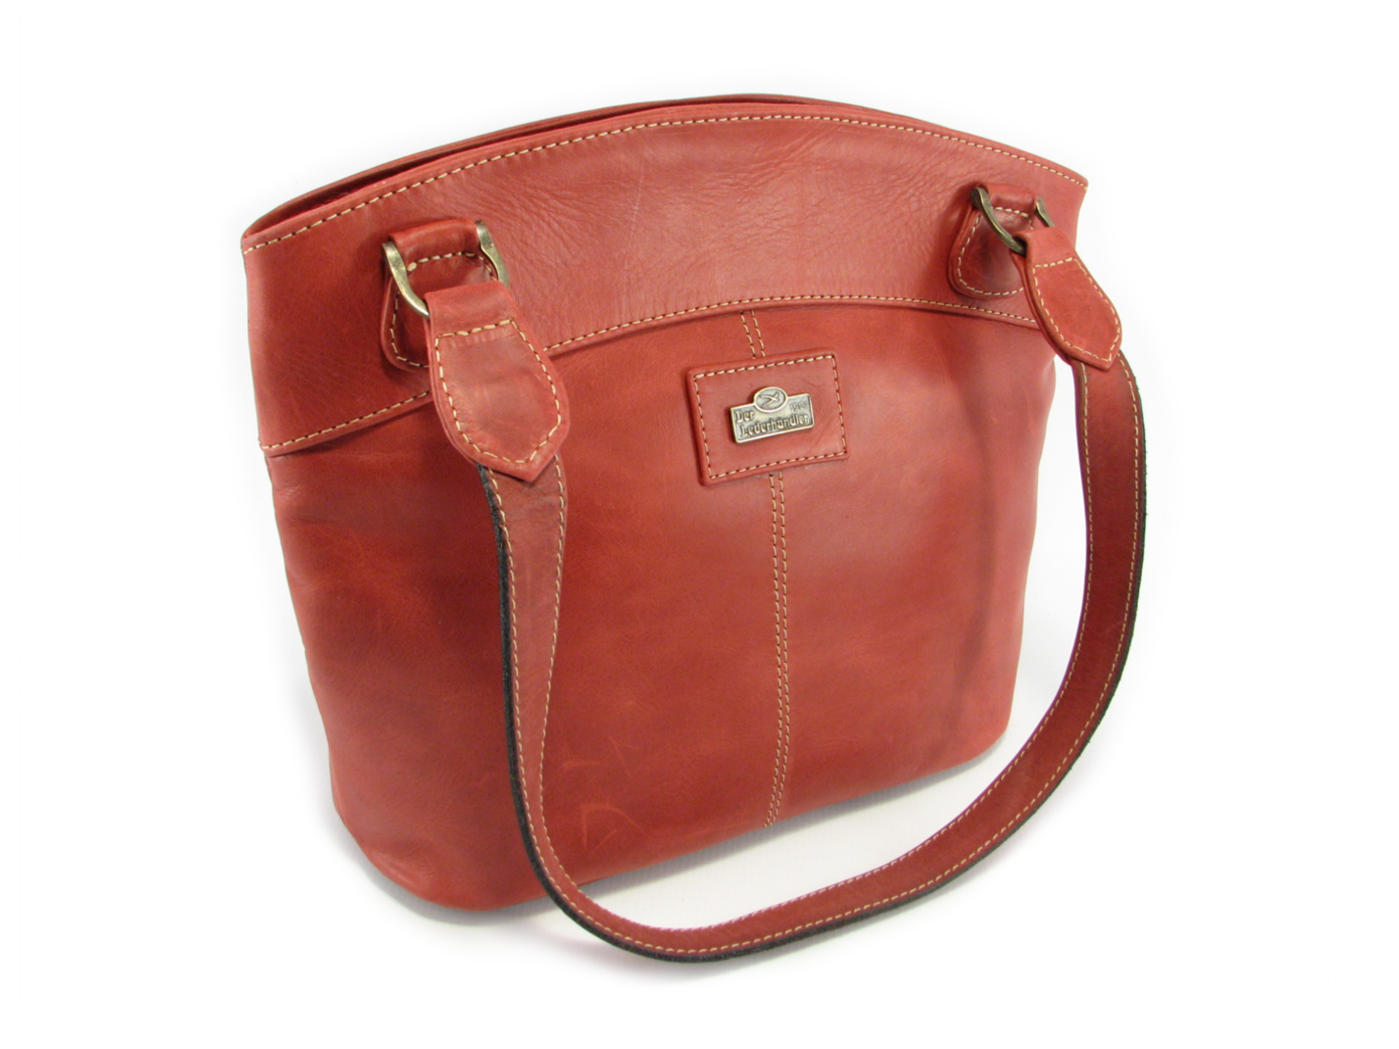 ec831681f8c4 Home Leather Accessories Online Leather Bags Leather Bags for Women Leather  Handbags Women ...